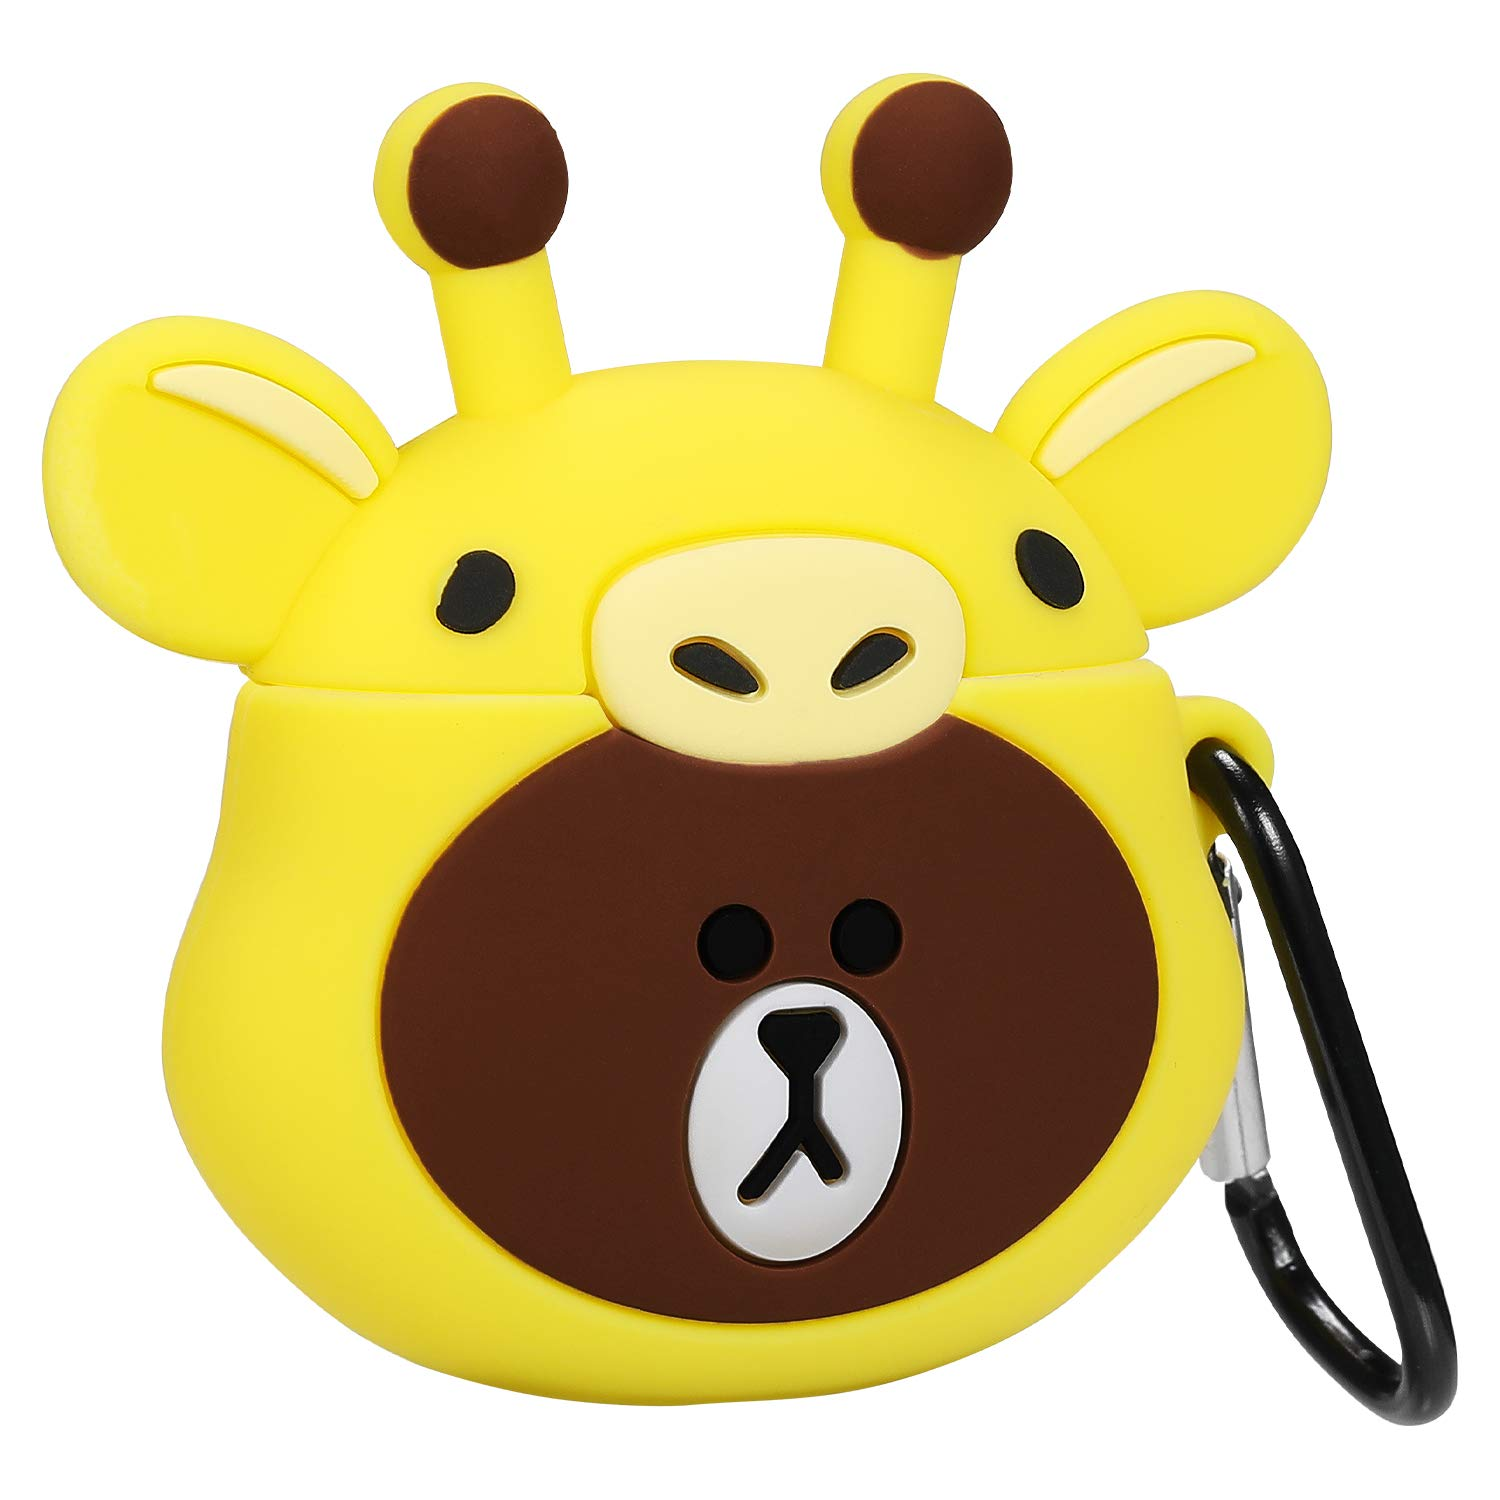 Gift-Hero Compatible with Airpods 1&2 Soft Silicone Cute Case,Cartoon 3D Fun Animal Funny Cool Kawaii Designer Kits Character Design Skin Fashion Cover for Girls Boys Kids Teens Air pods(Giraffe Bear)